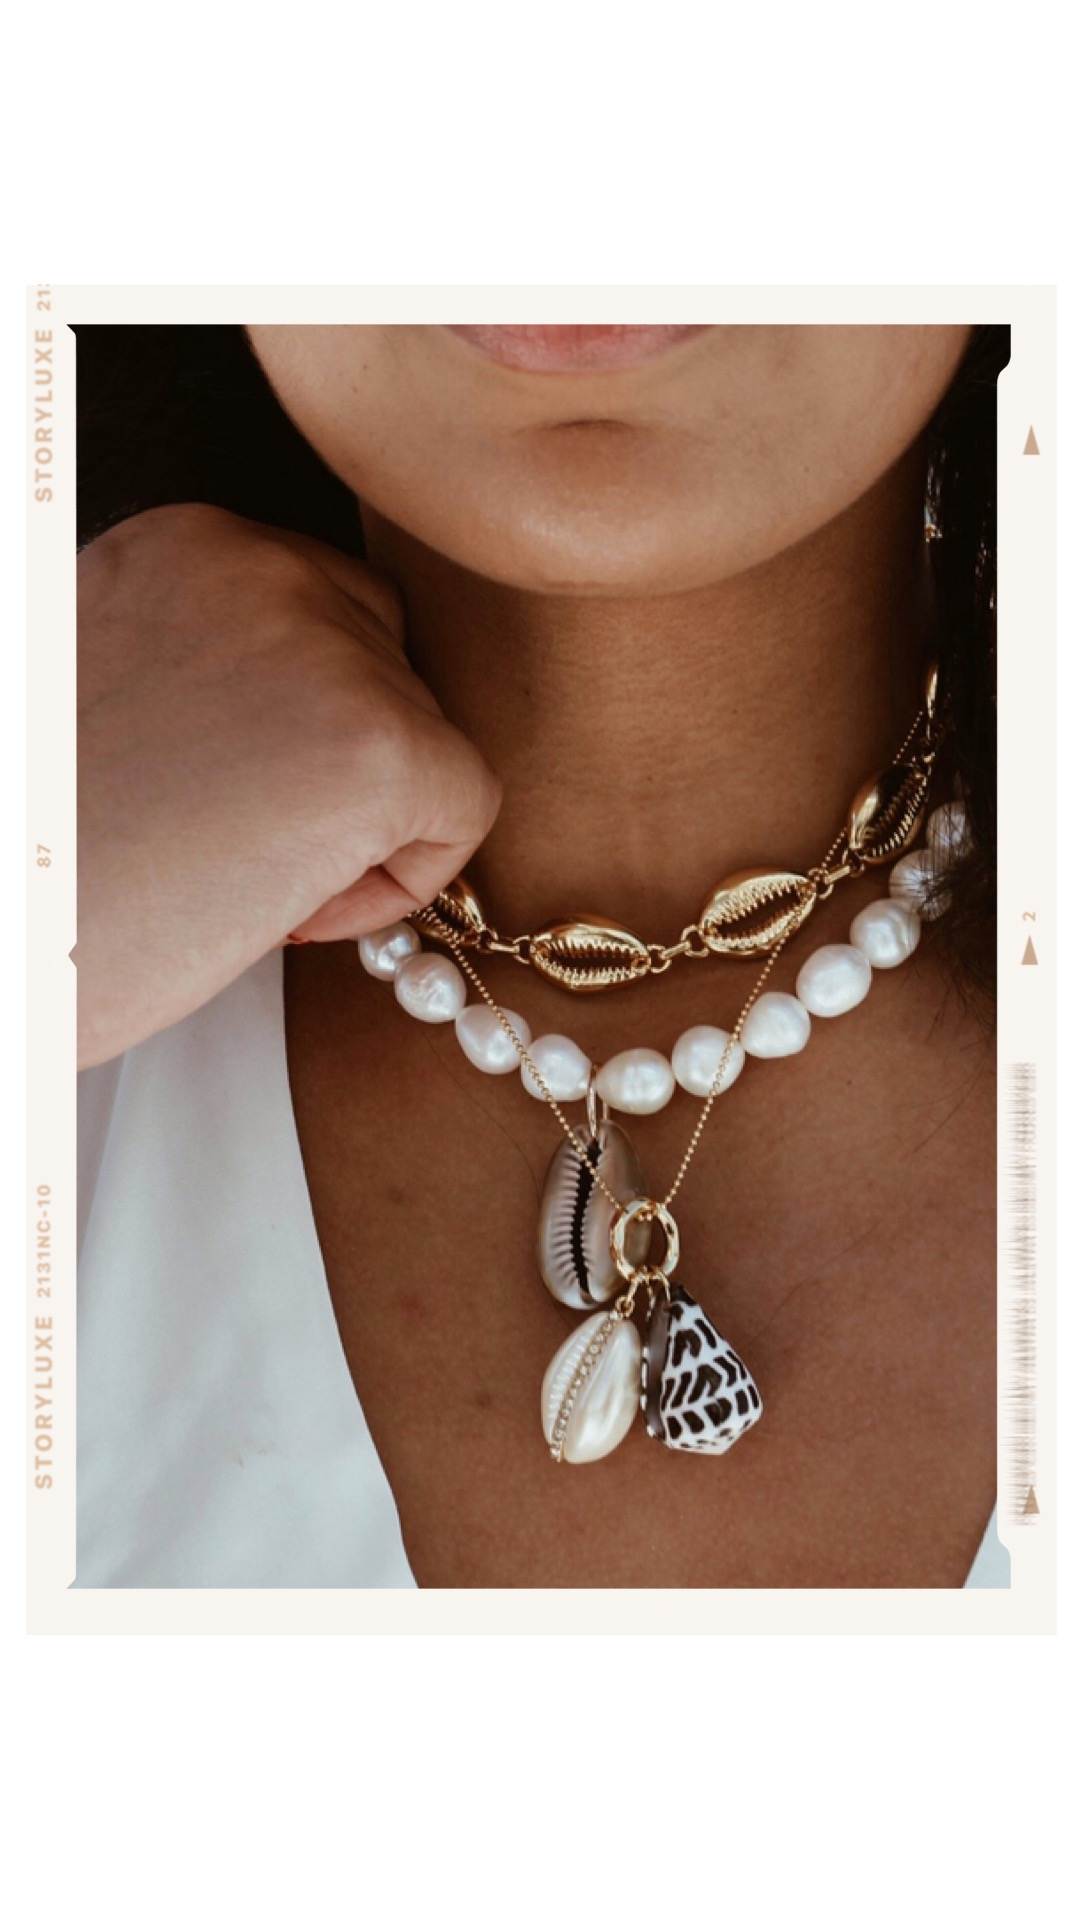 Robinson-Style-bauble-bar-shell-necklace-layering-accessories-trends.JPG